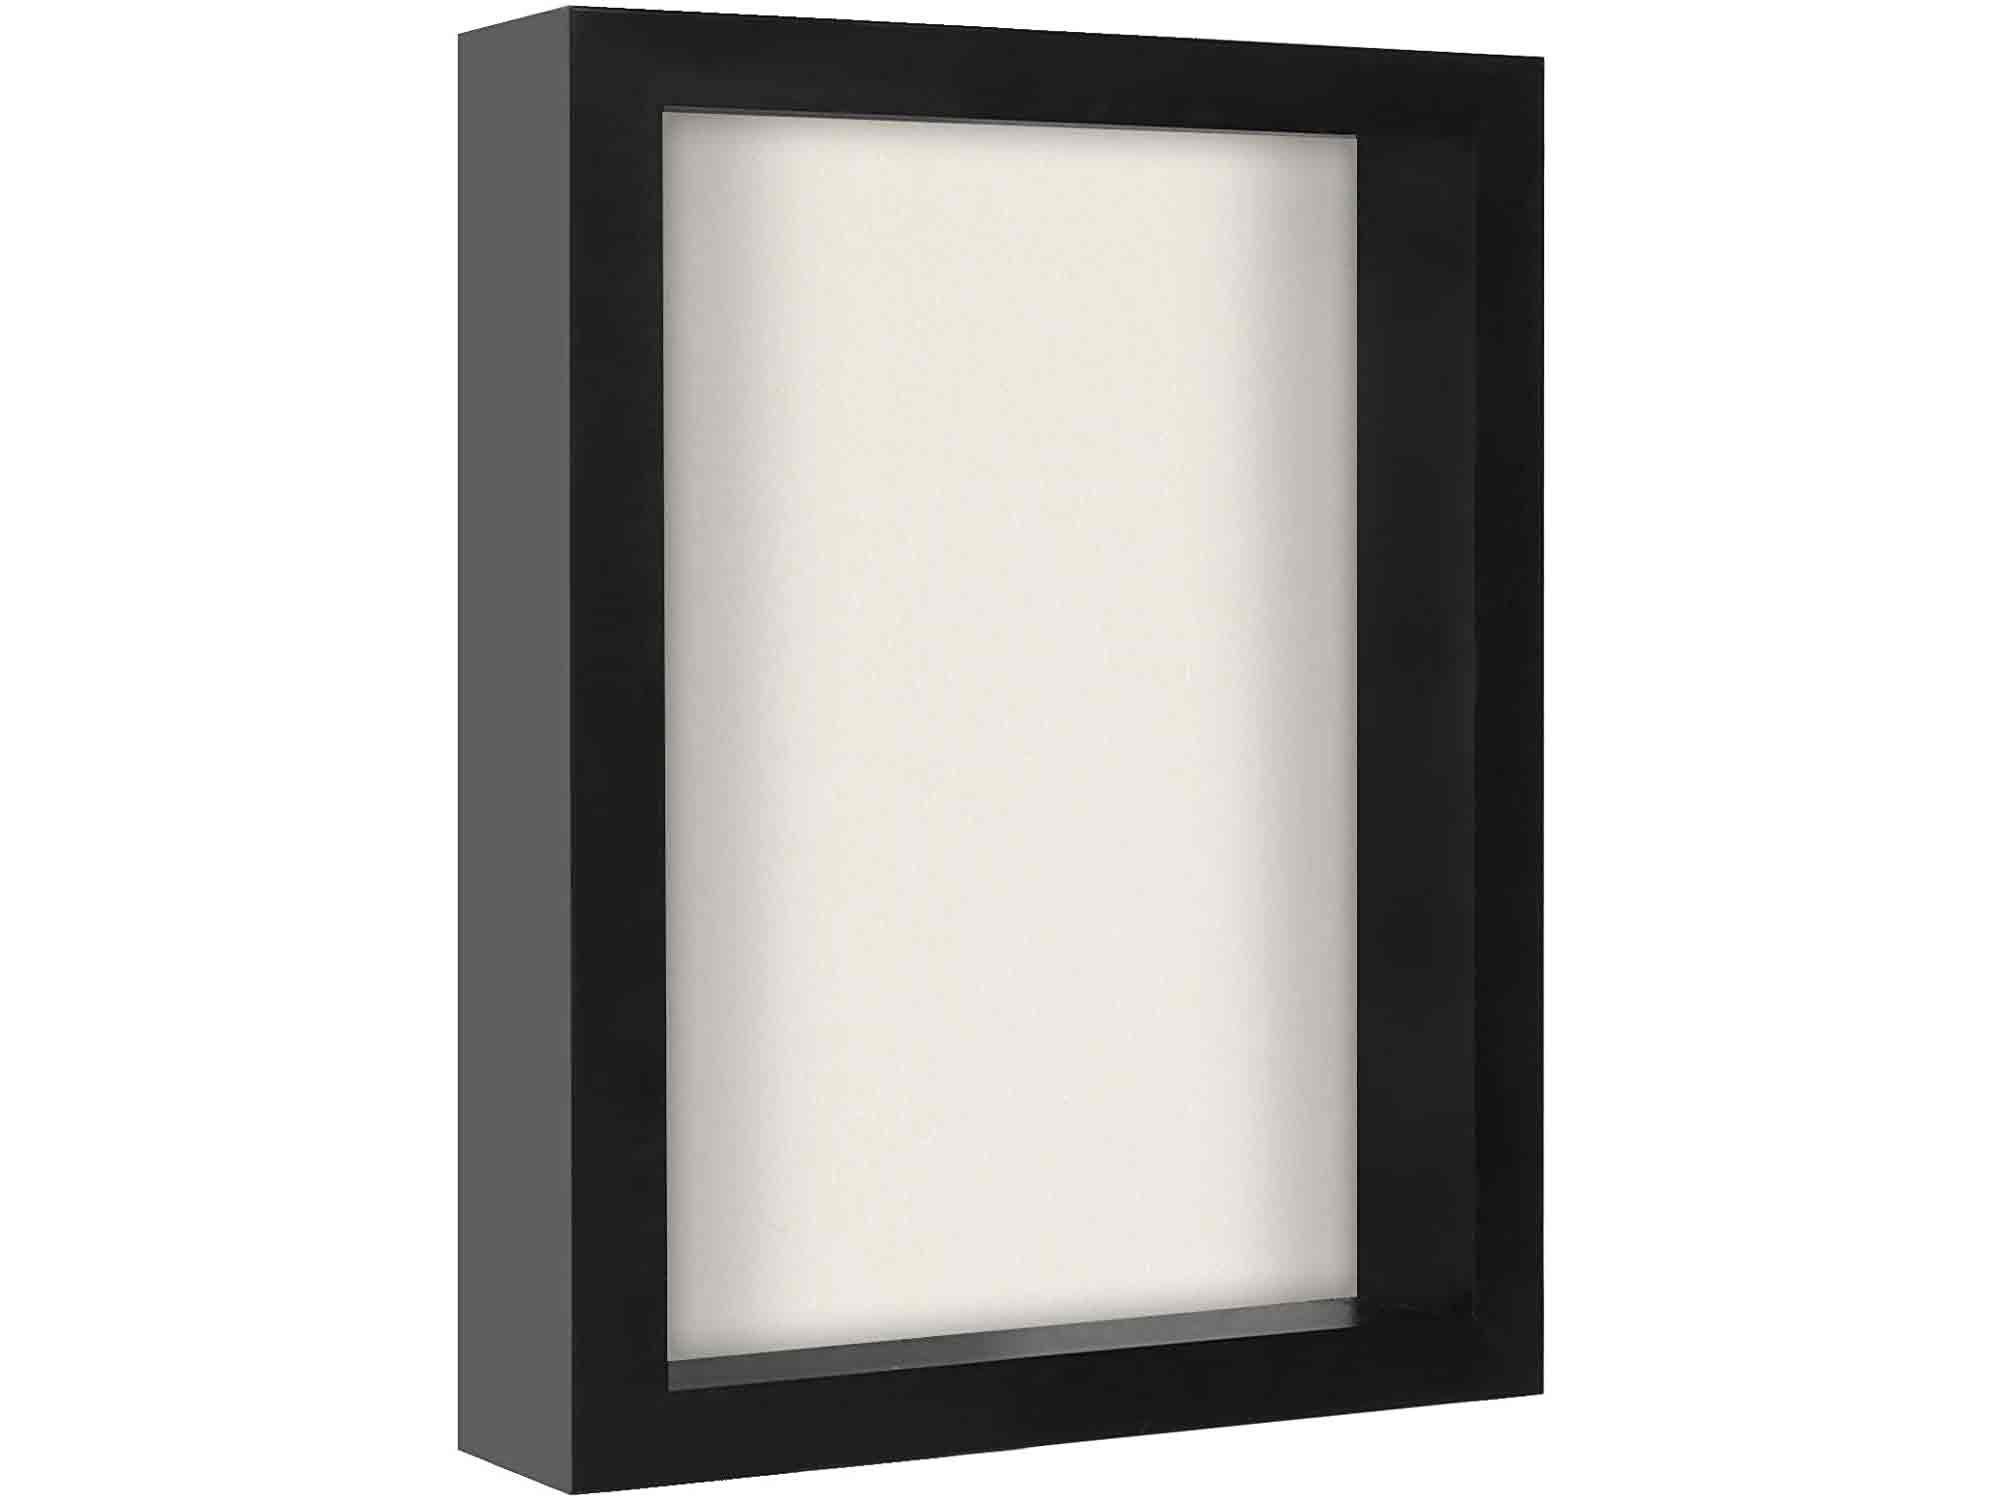 Americanflat 8x10 Shadow Box Frame in Black with Soft Linen Back - Composite Wood with Polished Glass for Wall and Tabletop